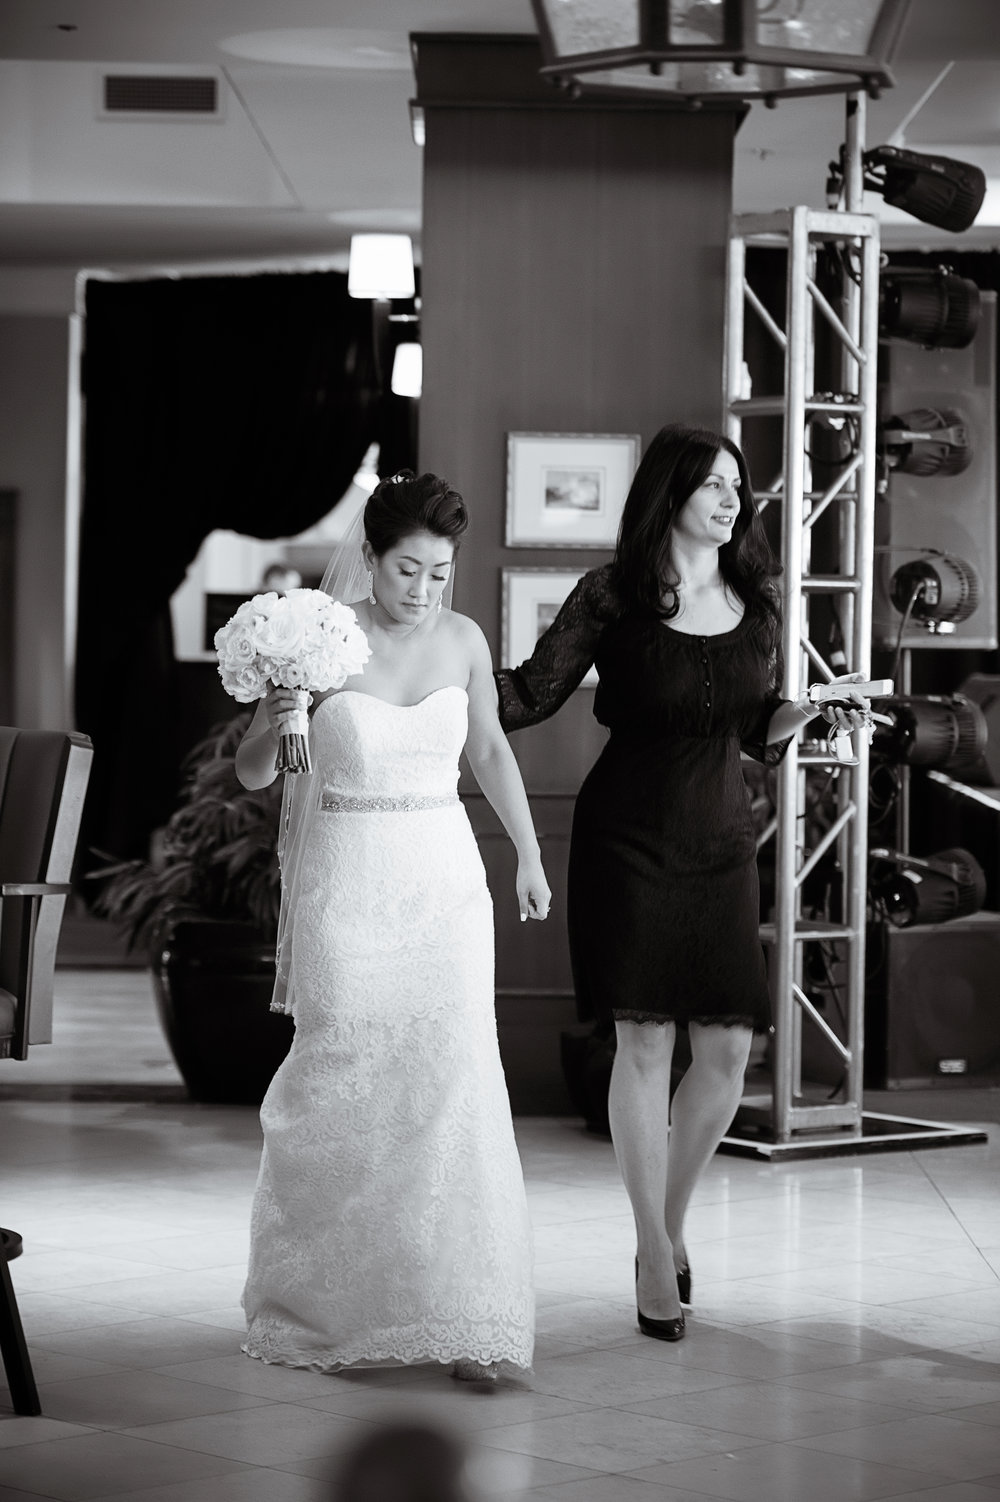 Luxury Wedding Planner Andrea Eppolito escorts the bride to her first look.  Las Vegas Wedding Planner Andrea Eppolito.  Photo by Studio JK.